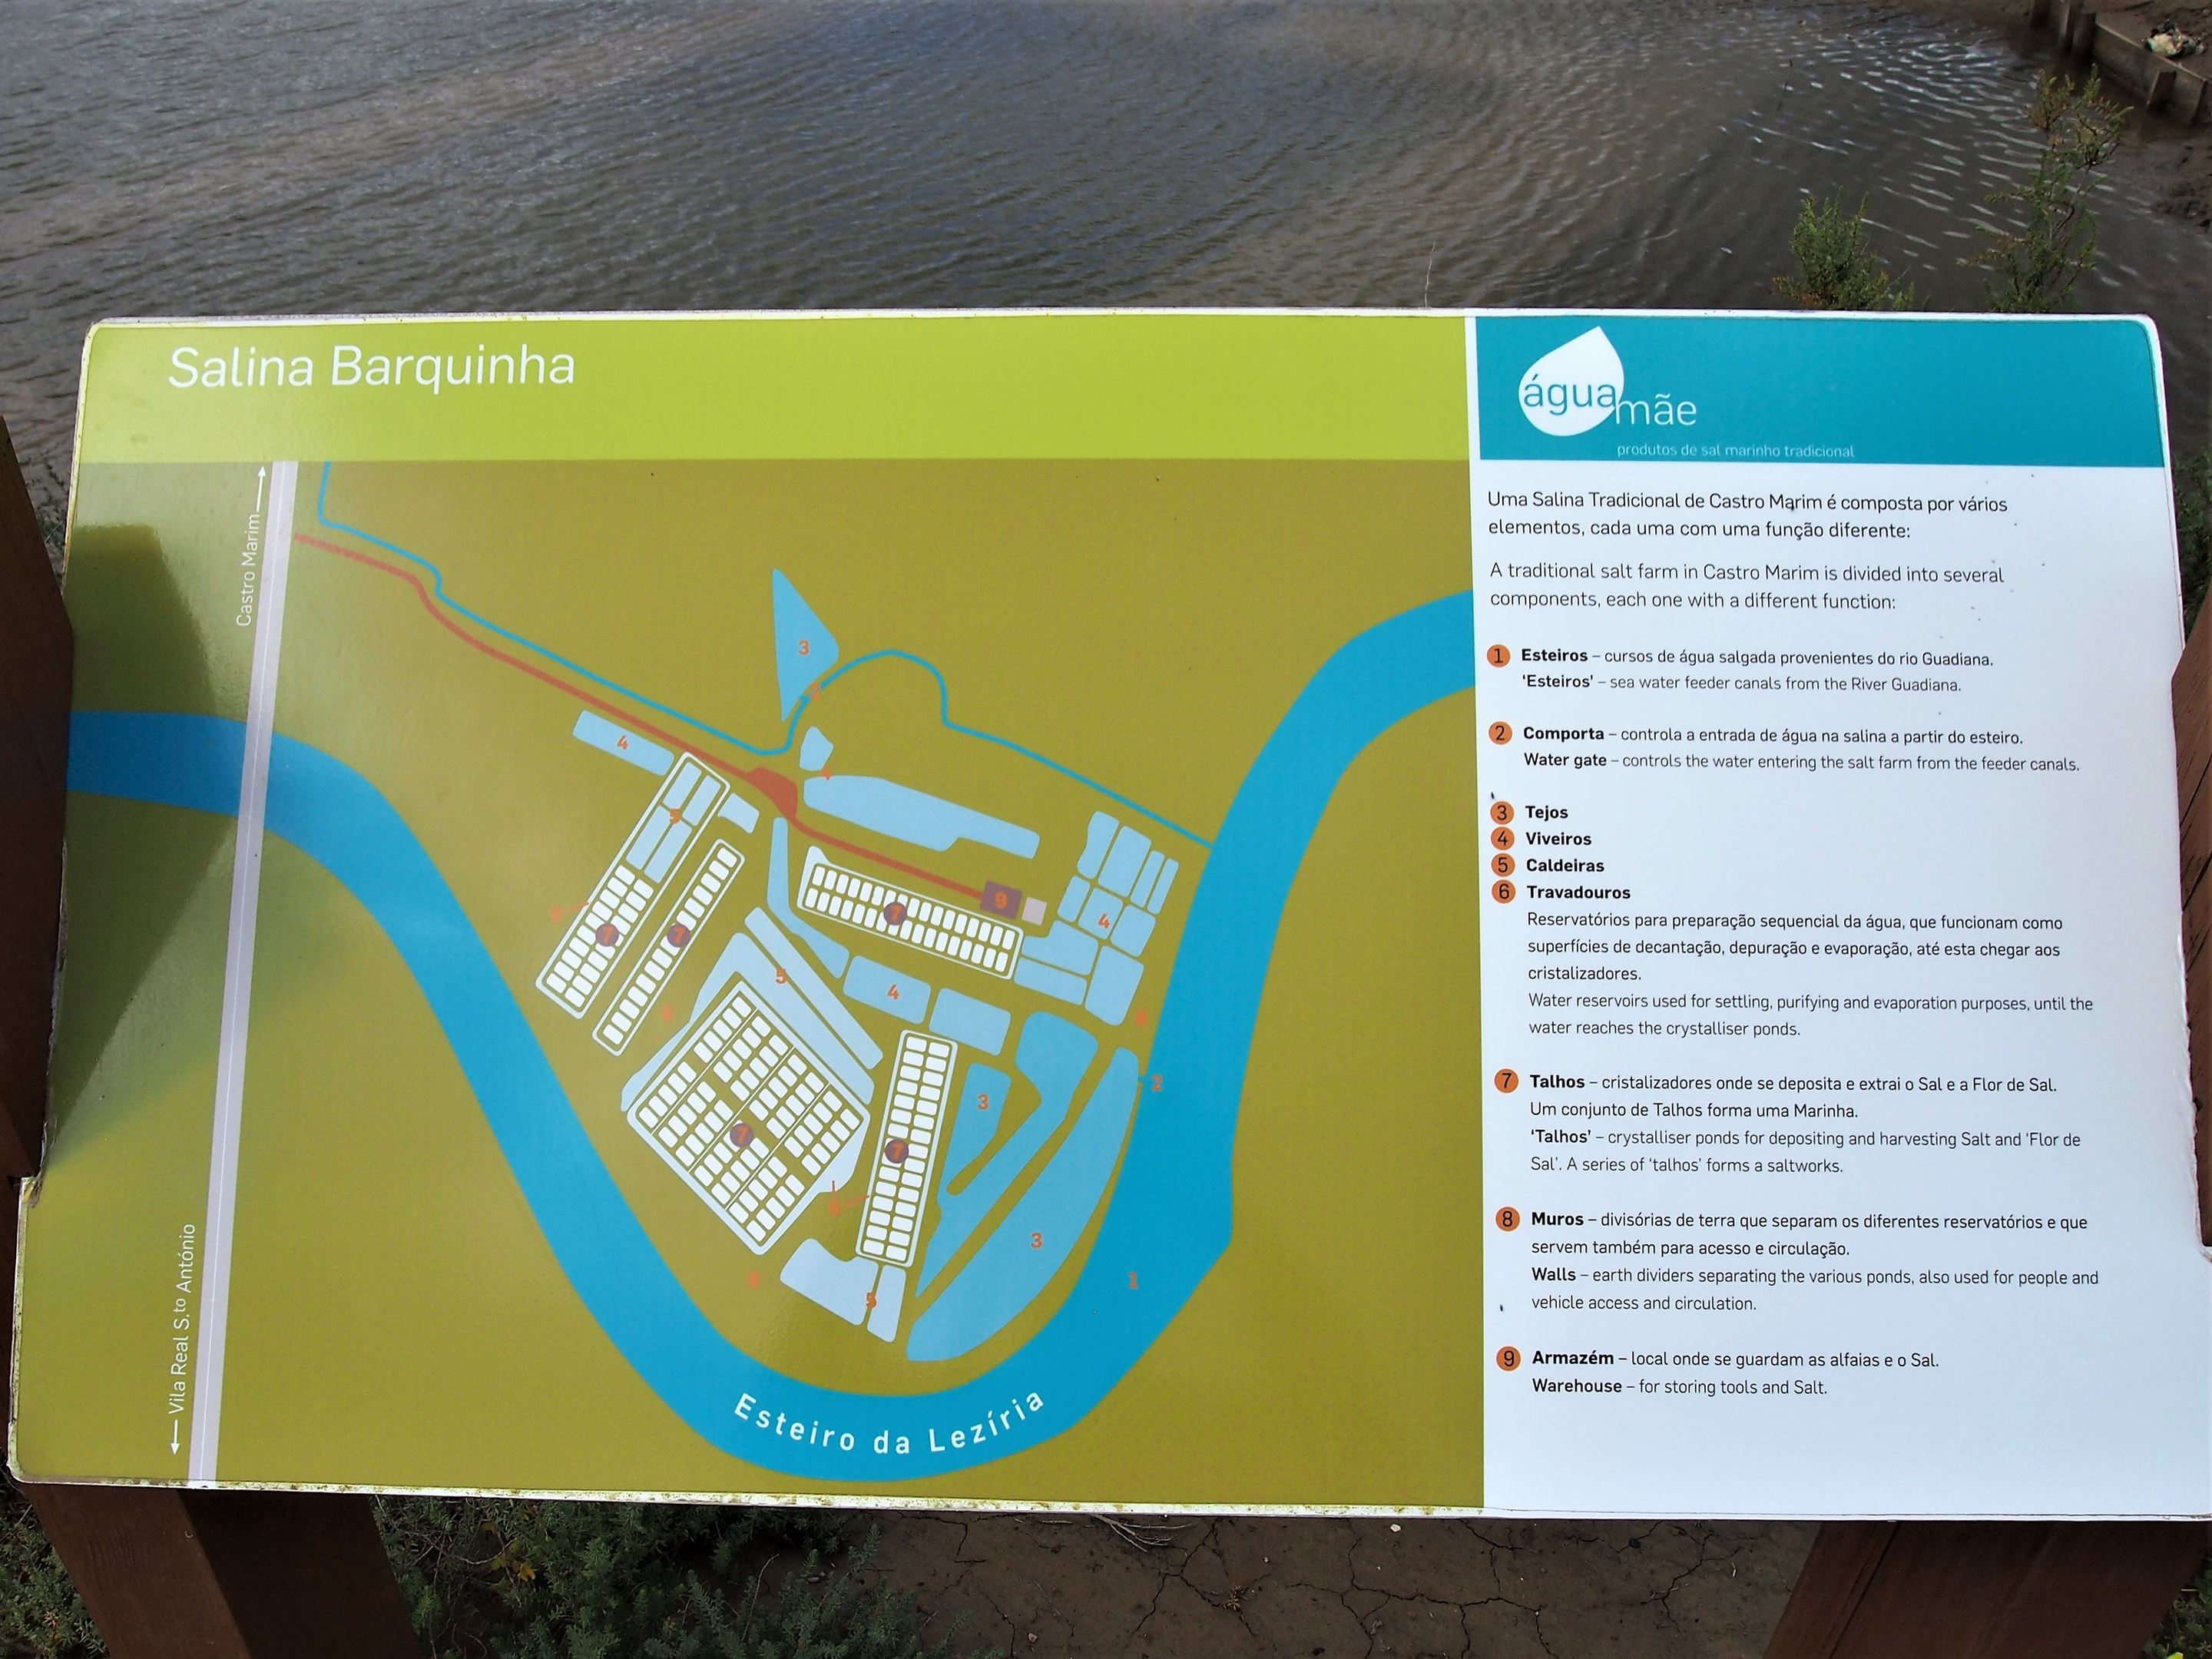 A map of the Salina da Barquinha, the salt farm at Castro Marim, explaining the structure and how it functions